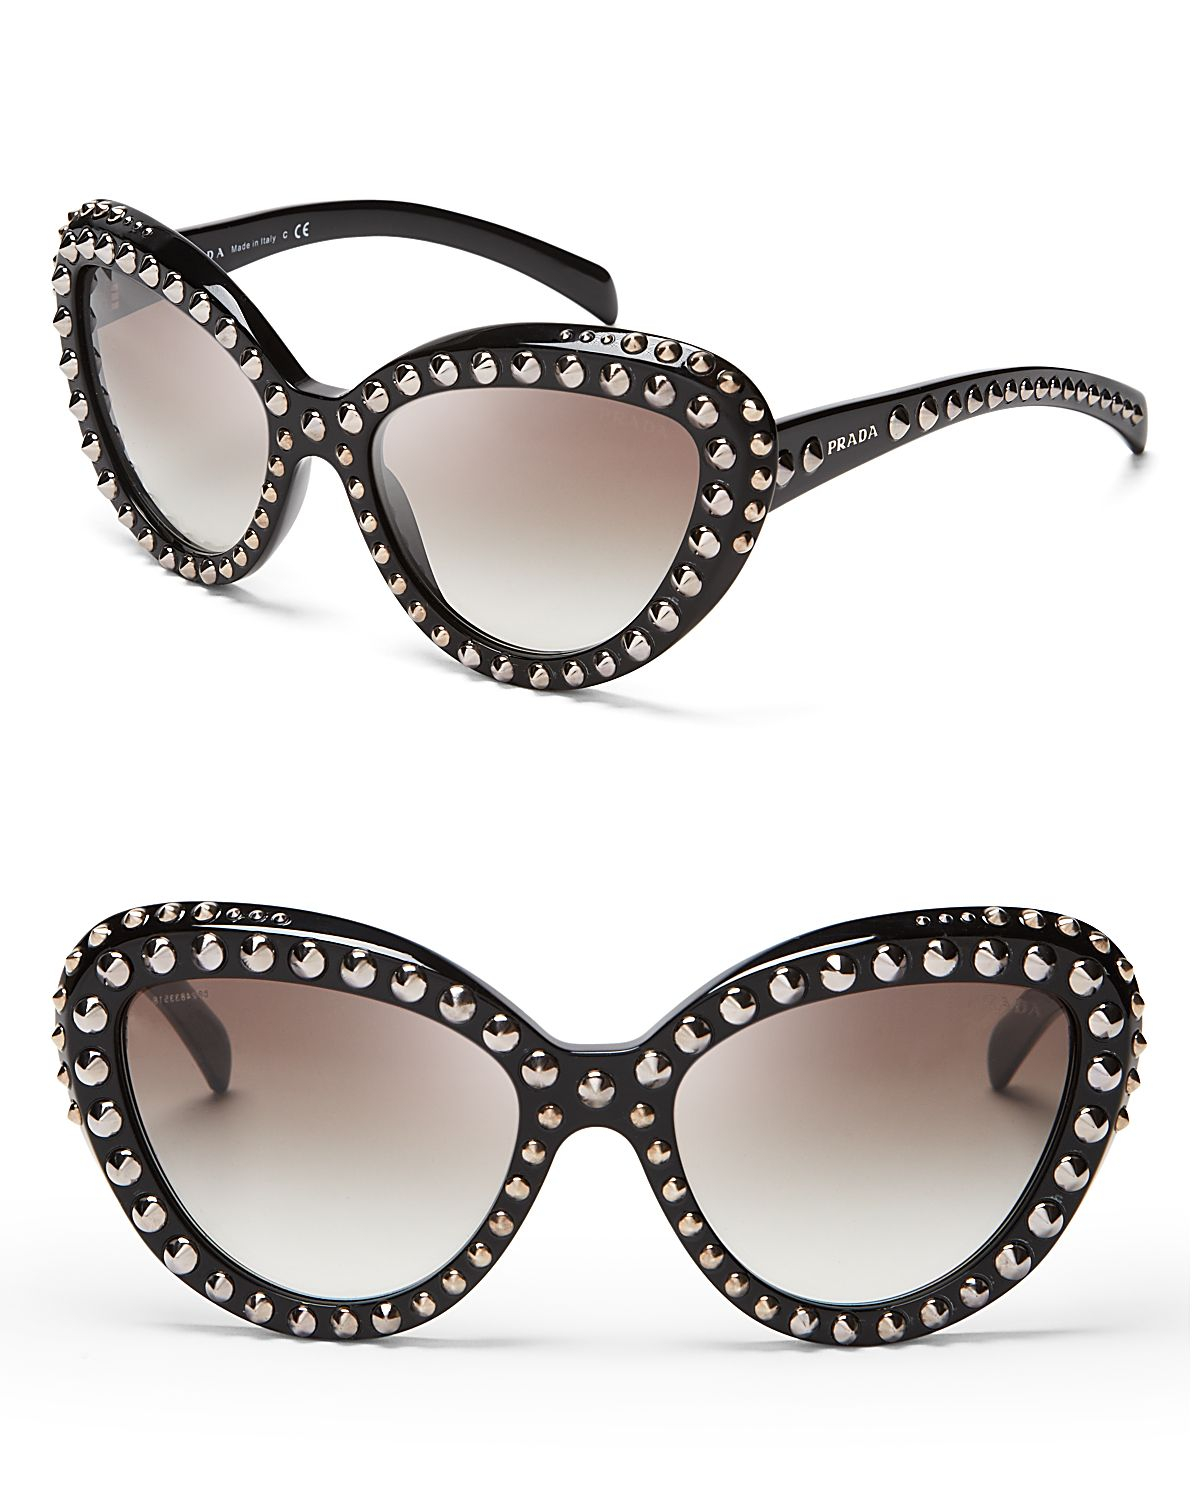 Sunglasses Prada Women S  prada absolute ornate cat eye sunglasses in black lyst